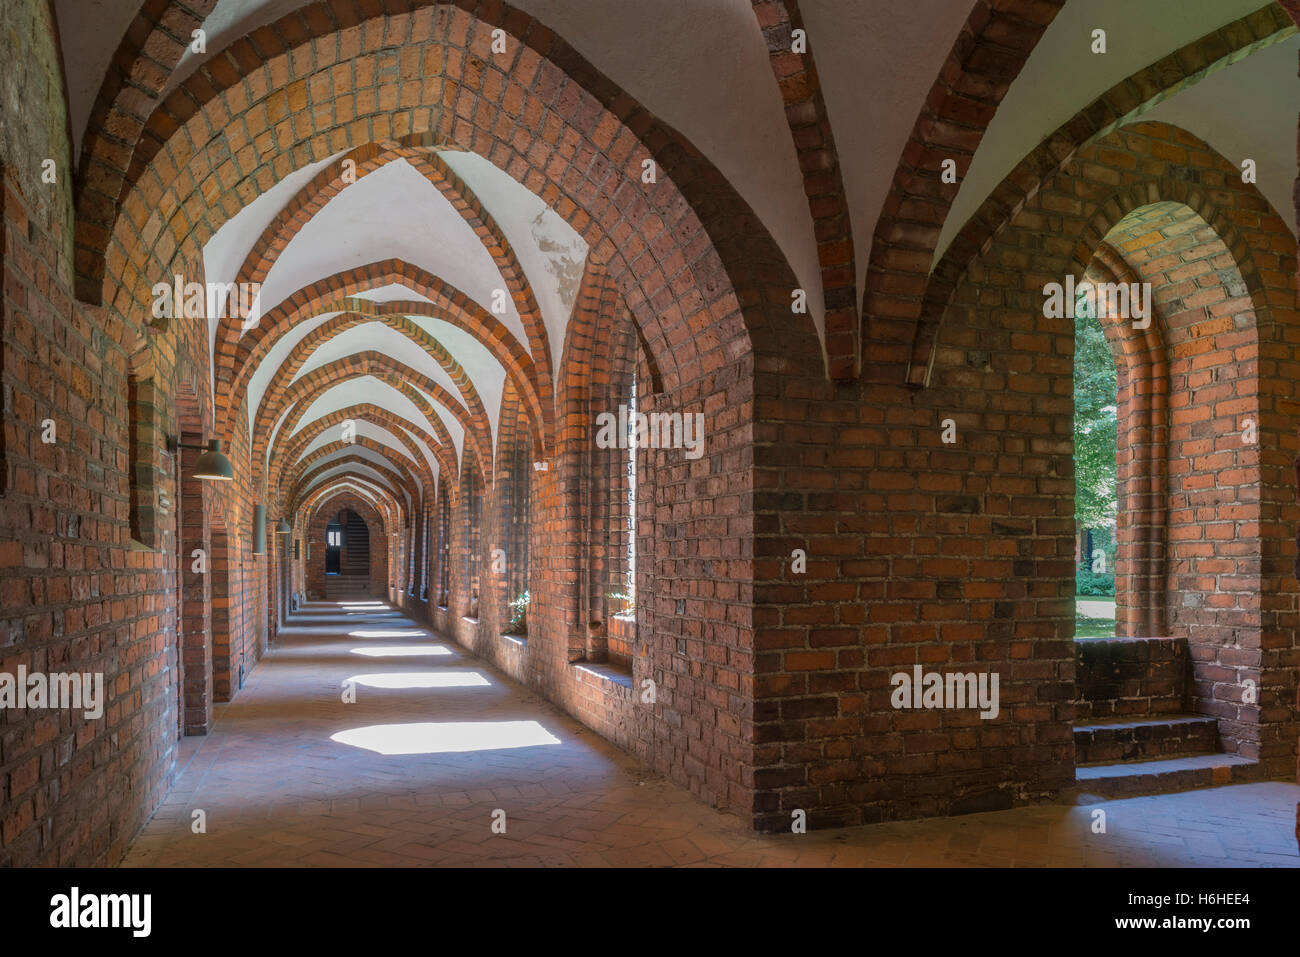 Cloister in Carmelite monastery, 15th century, Helsingør or Elsinore, Capital Region of Denmark, Denmark - Stock Image